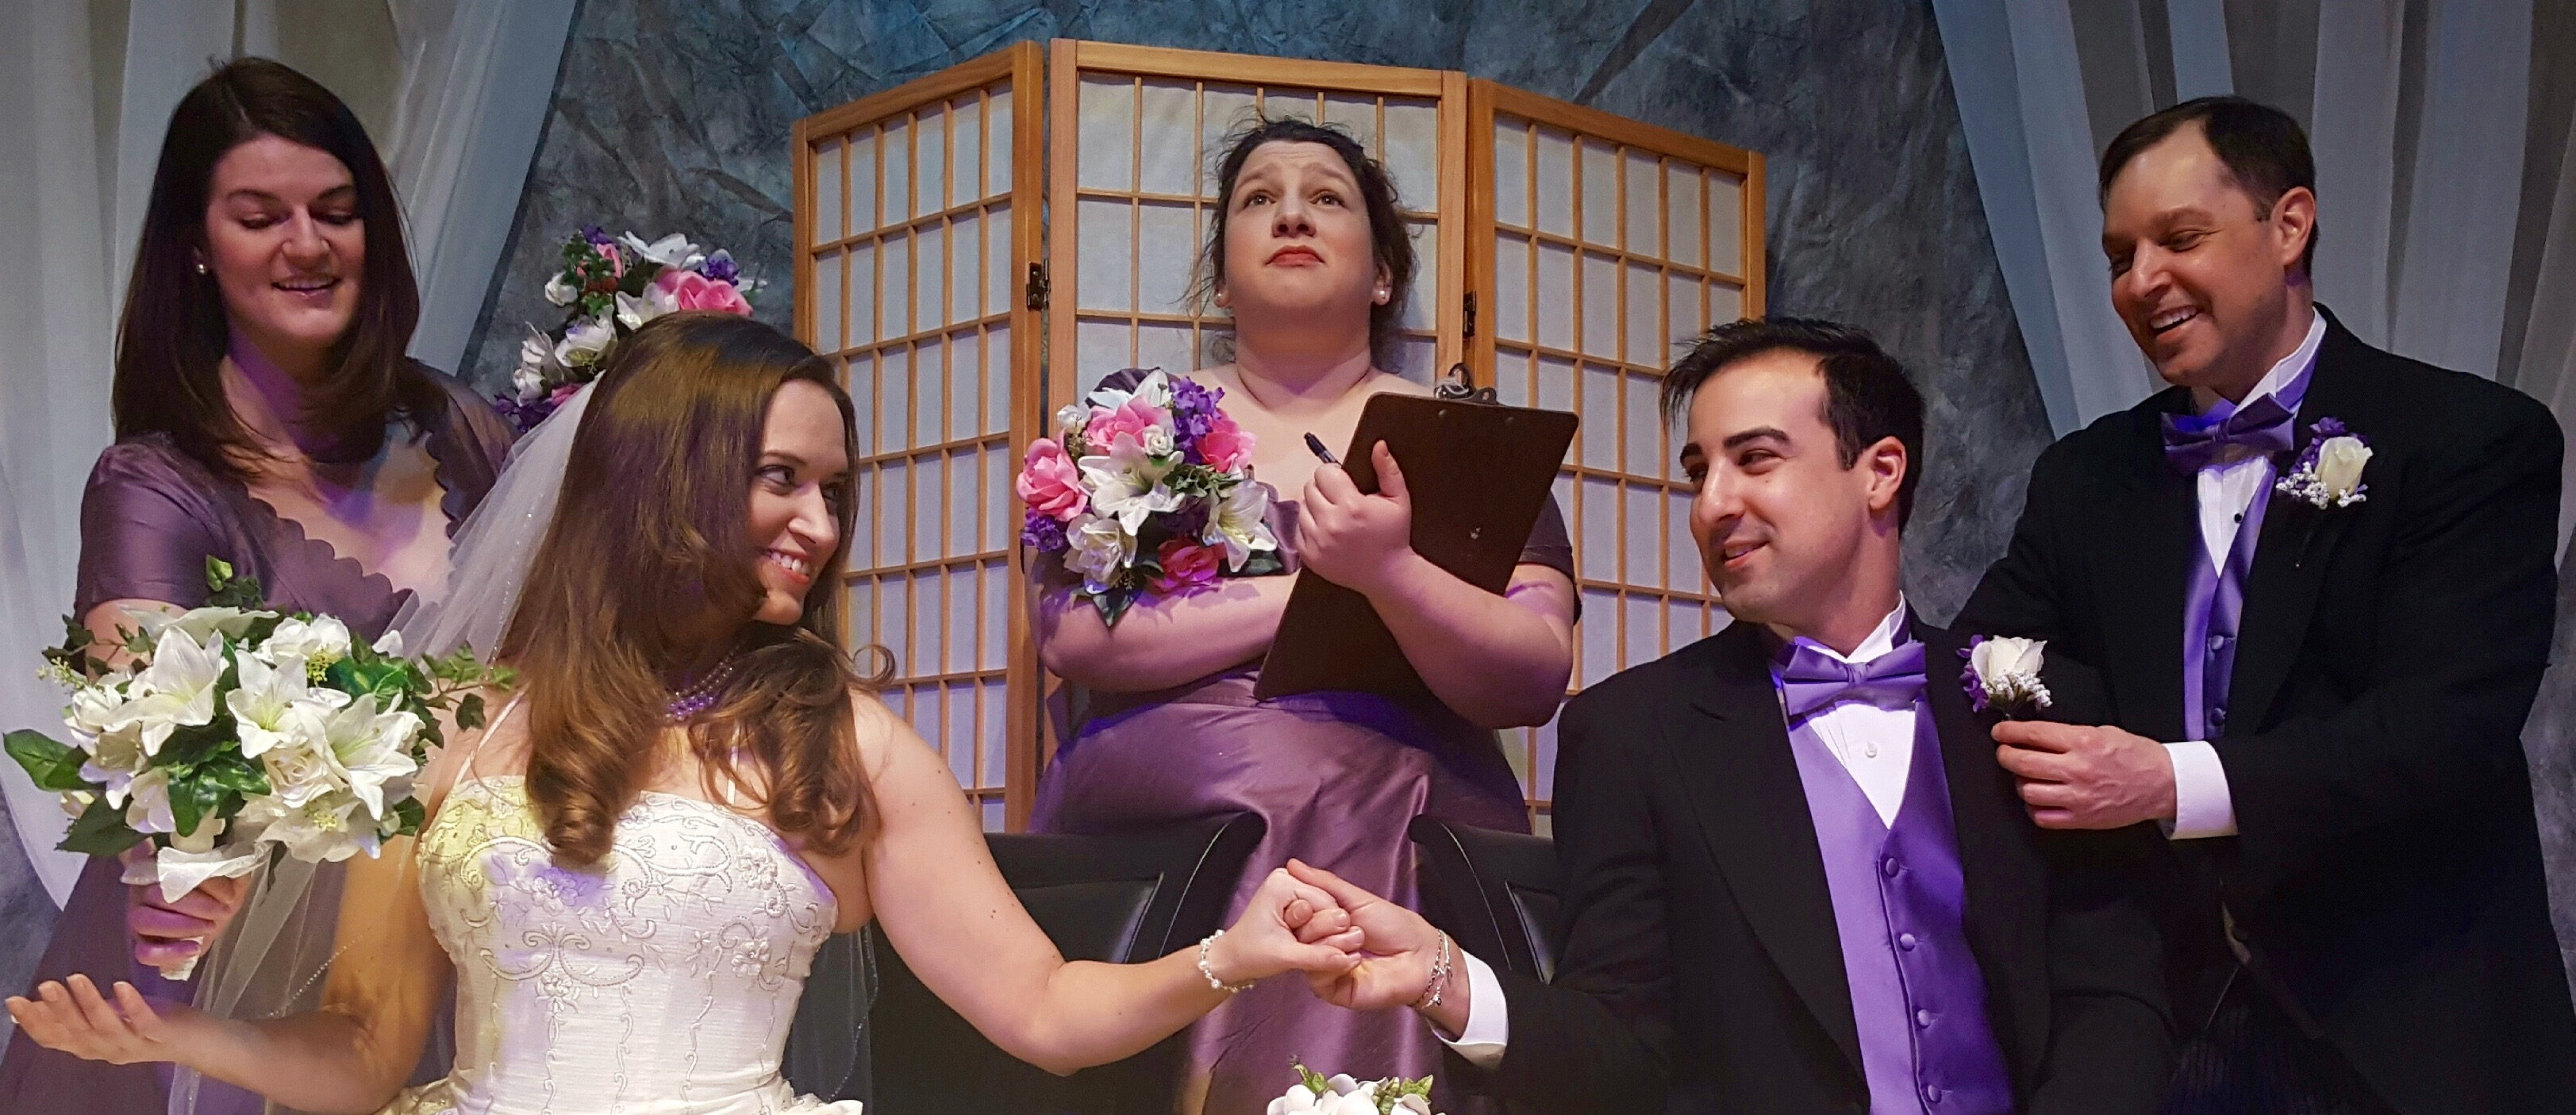 Rebecca Runge, Heather Reed, Sara Kovacsi, Adam Hayes and Matthew Mooney appear in O'Connell & Company's production of 'It Shoulda Been You.'